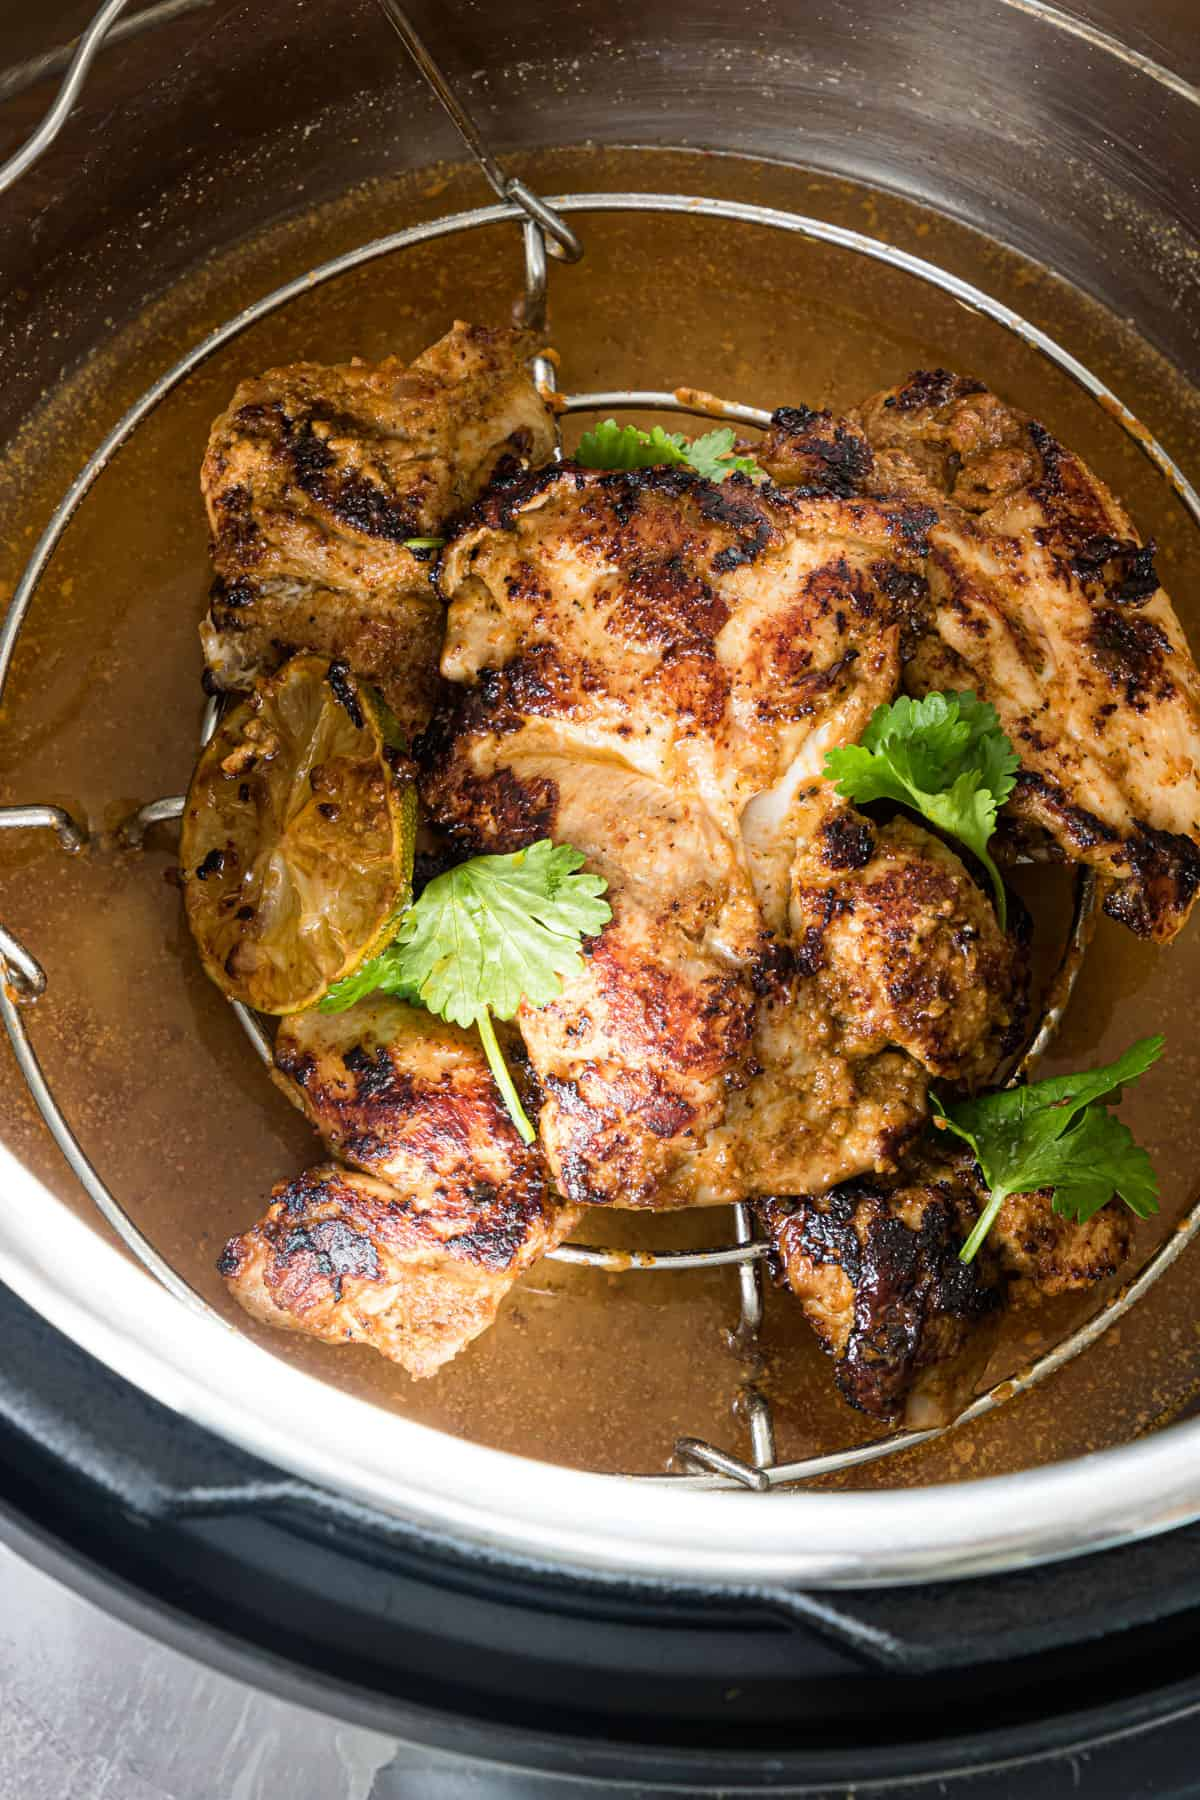 Cooked Instant Pot Chipotle Chicken In a pressure cooker